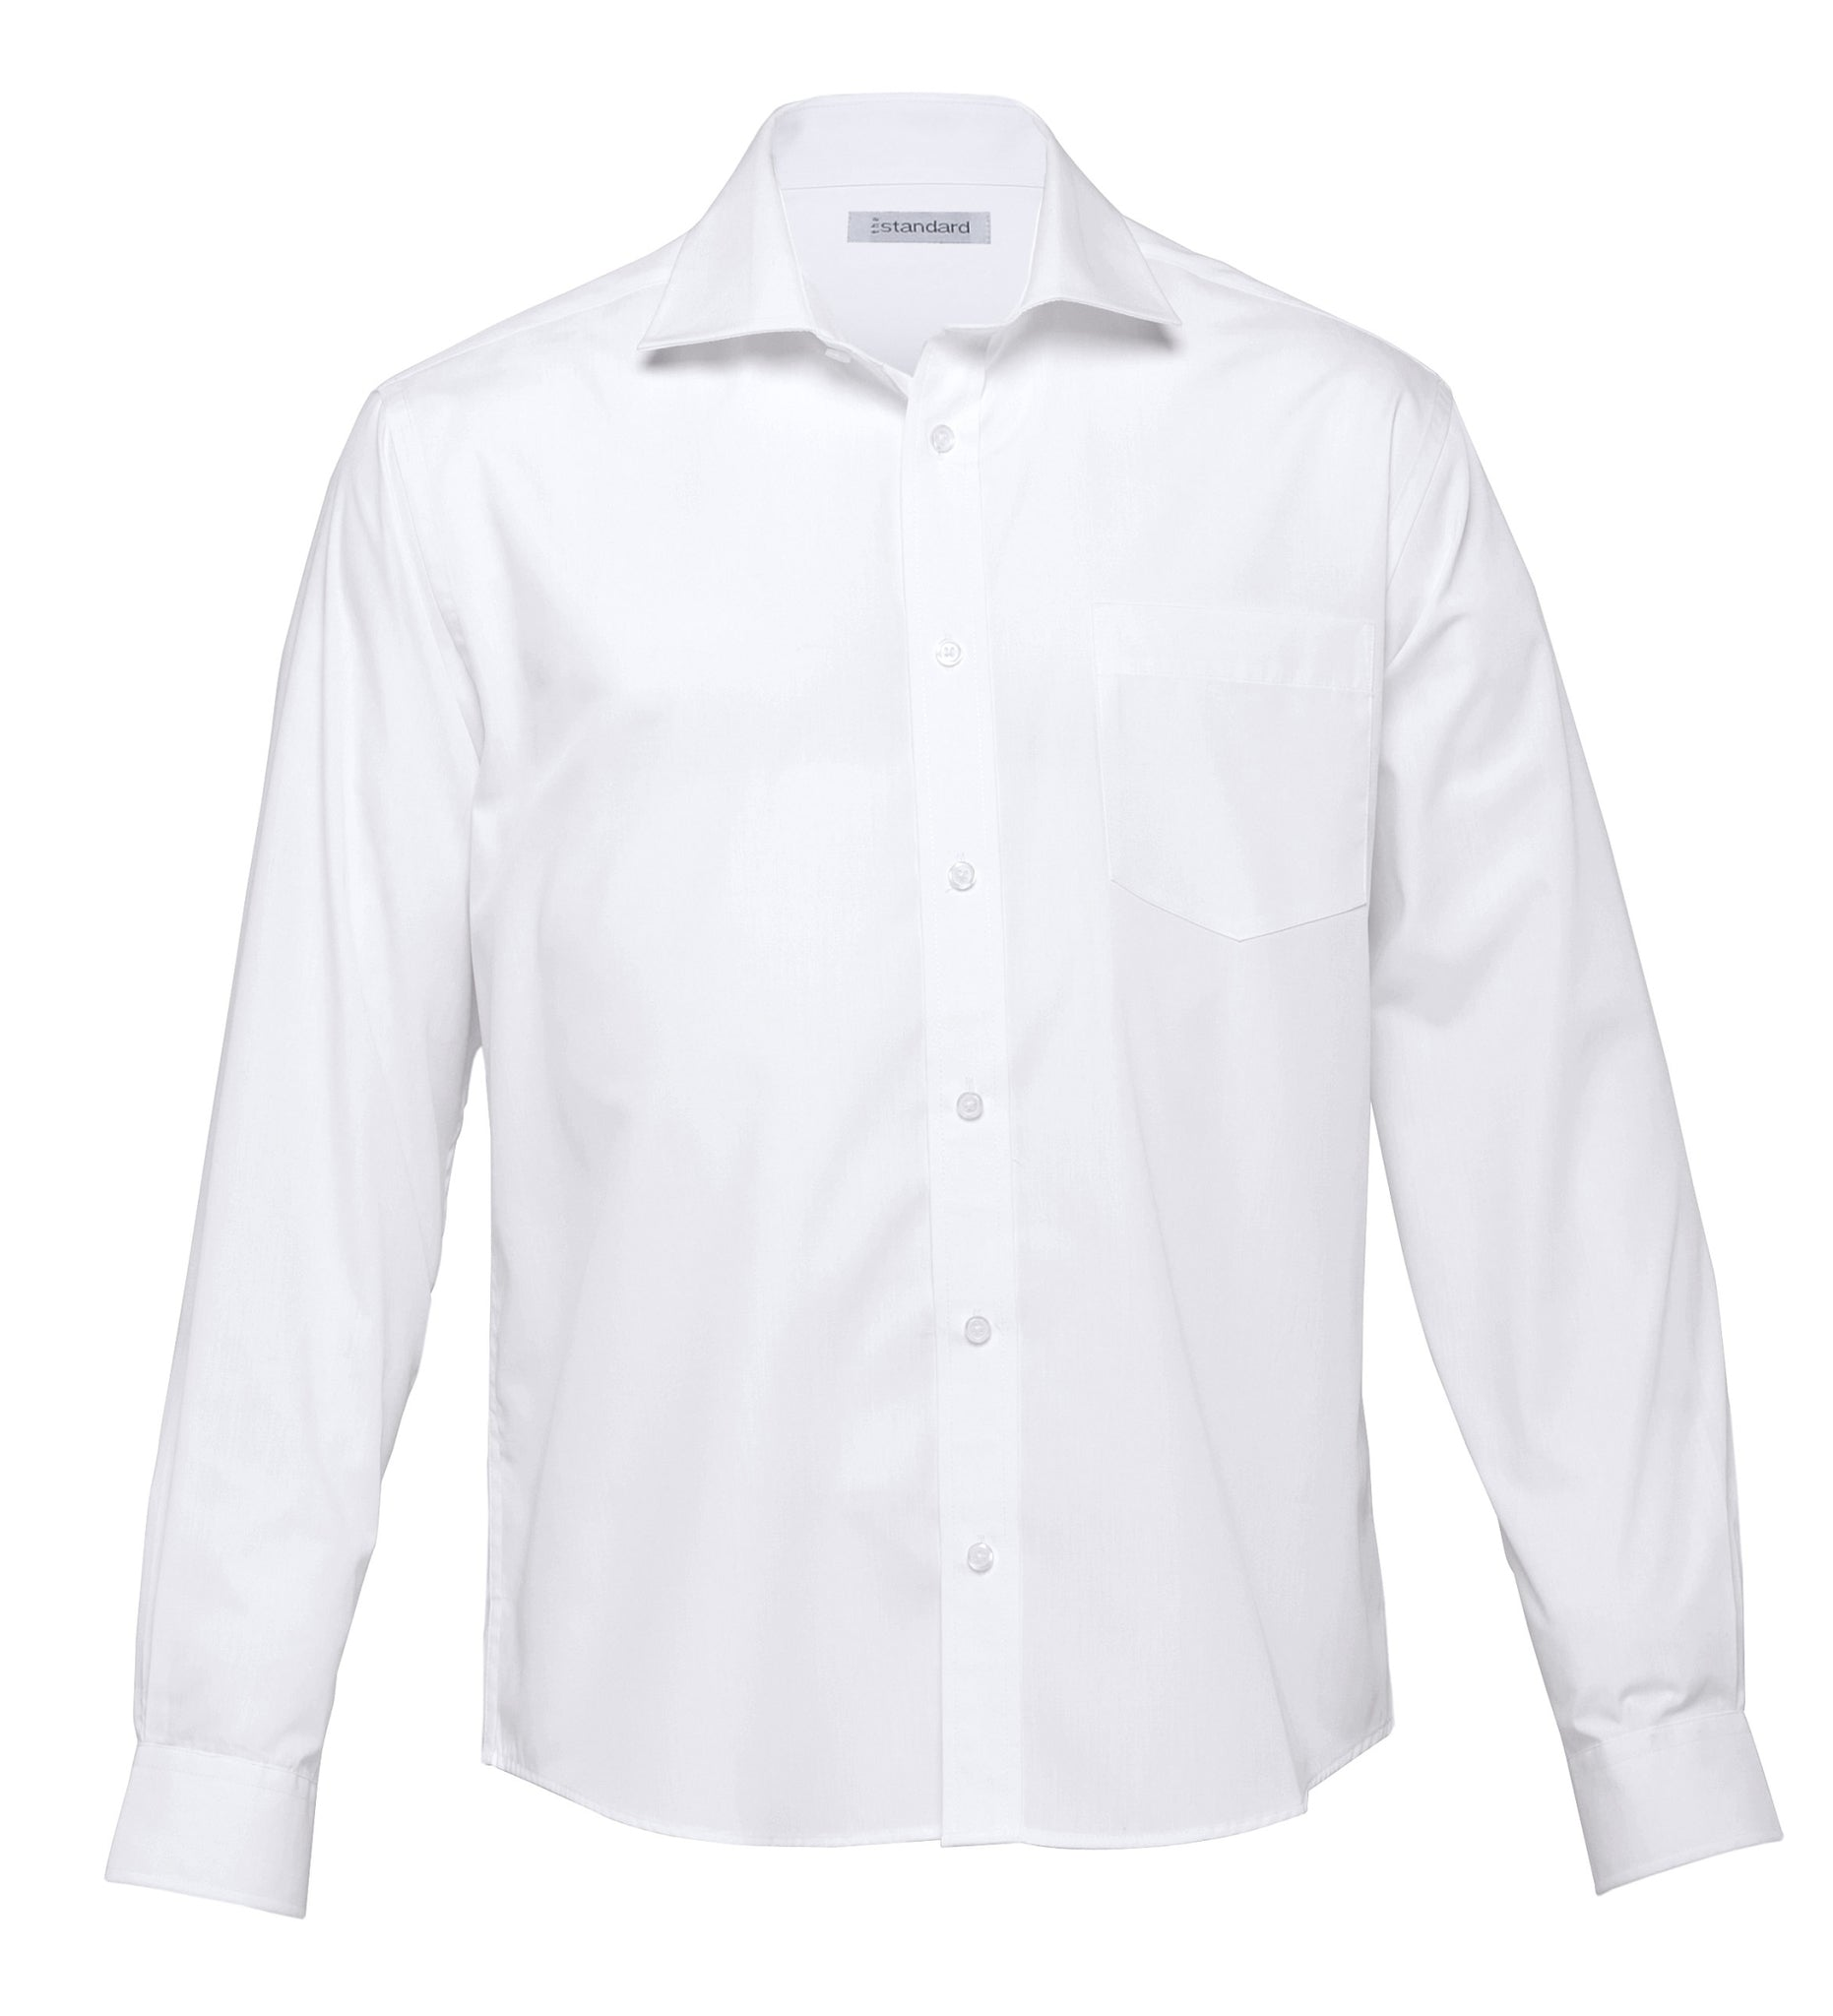 Crisp Men's White Shirt